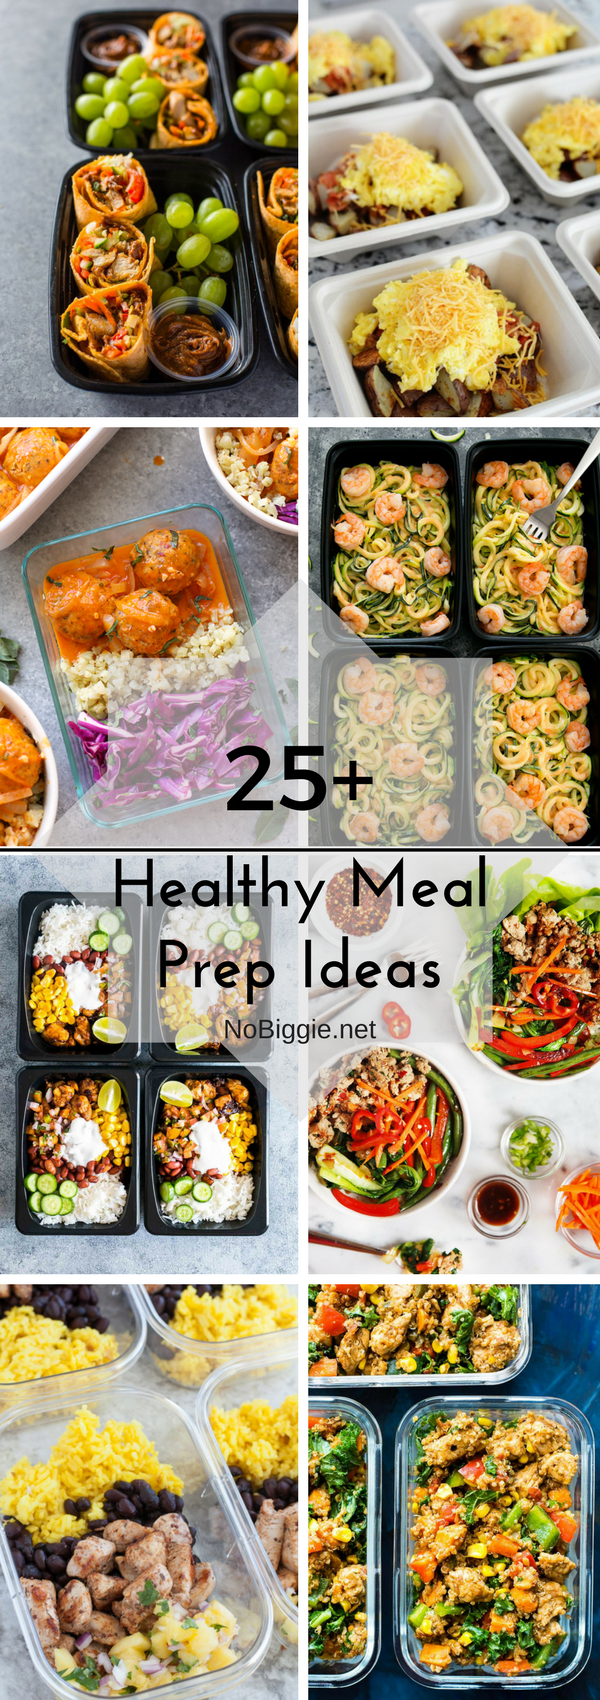 Healthy Meal Prep Ideas - With this awesome list of healthy meal prep ideas, you can prep it all on the weekend and have multiple days in a row ready to just grab and go. #healthymeals #mealprep #healthymealprep #healthyeating #mealprepideas